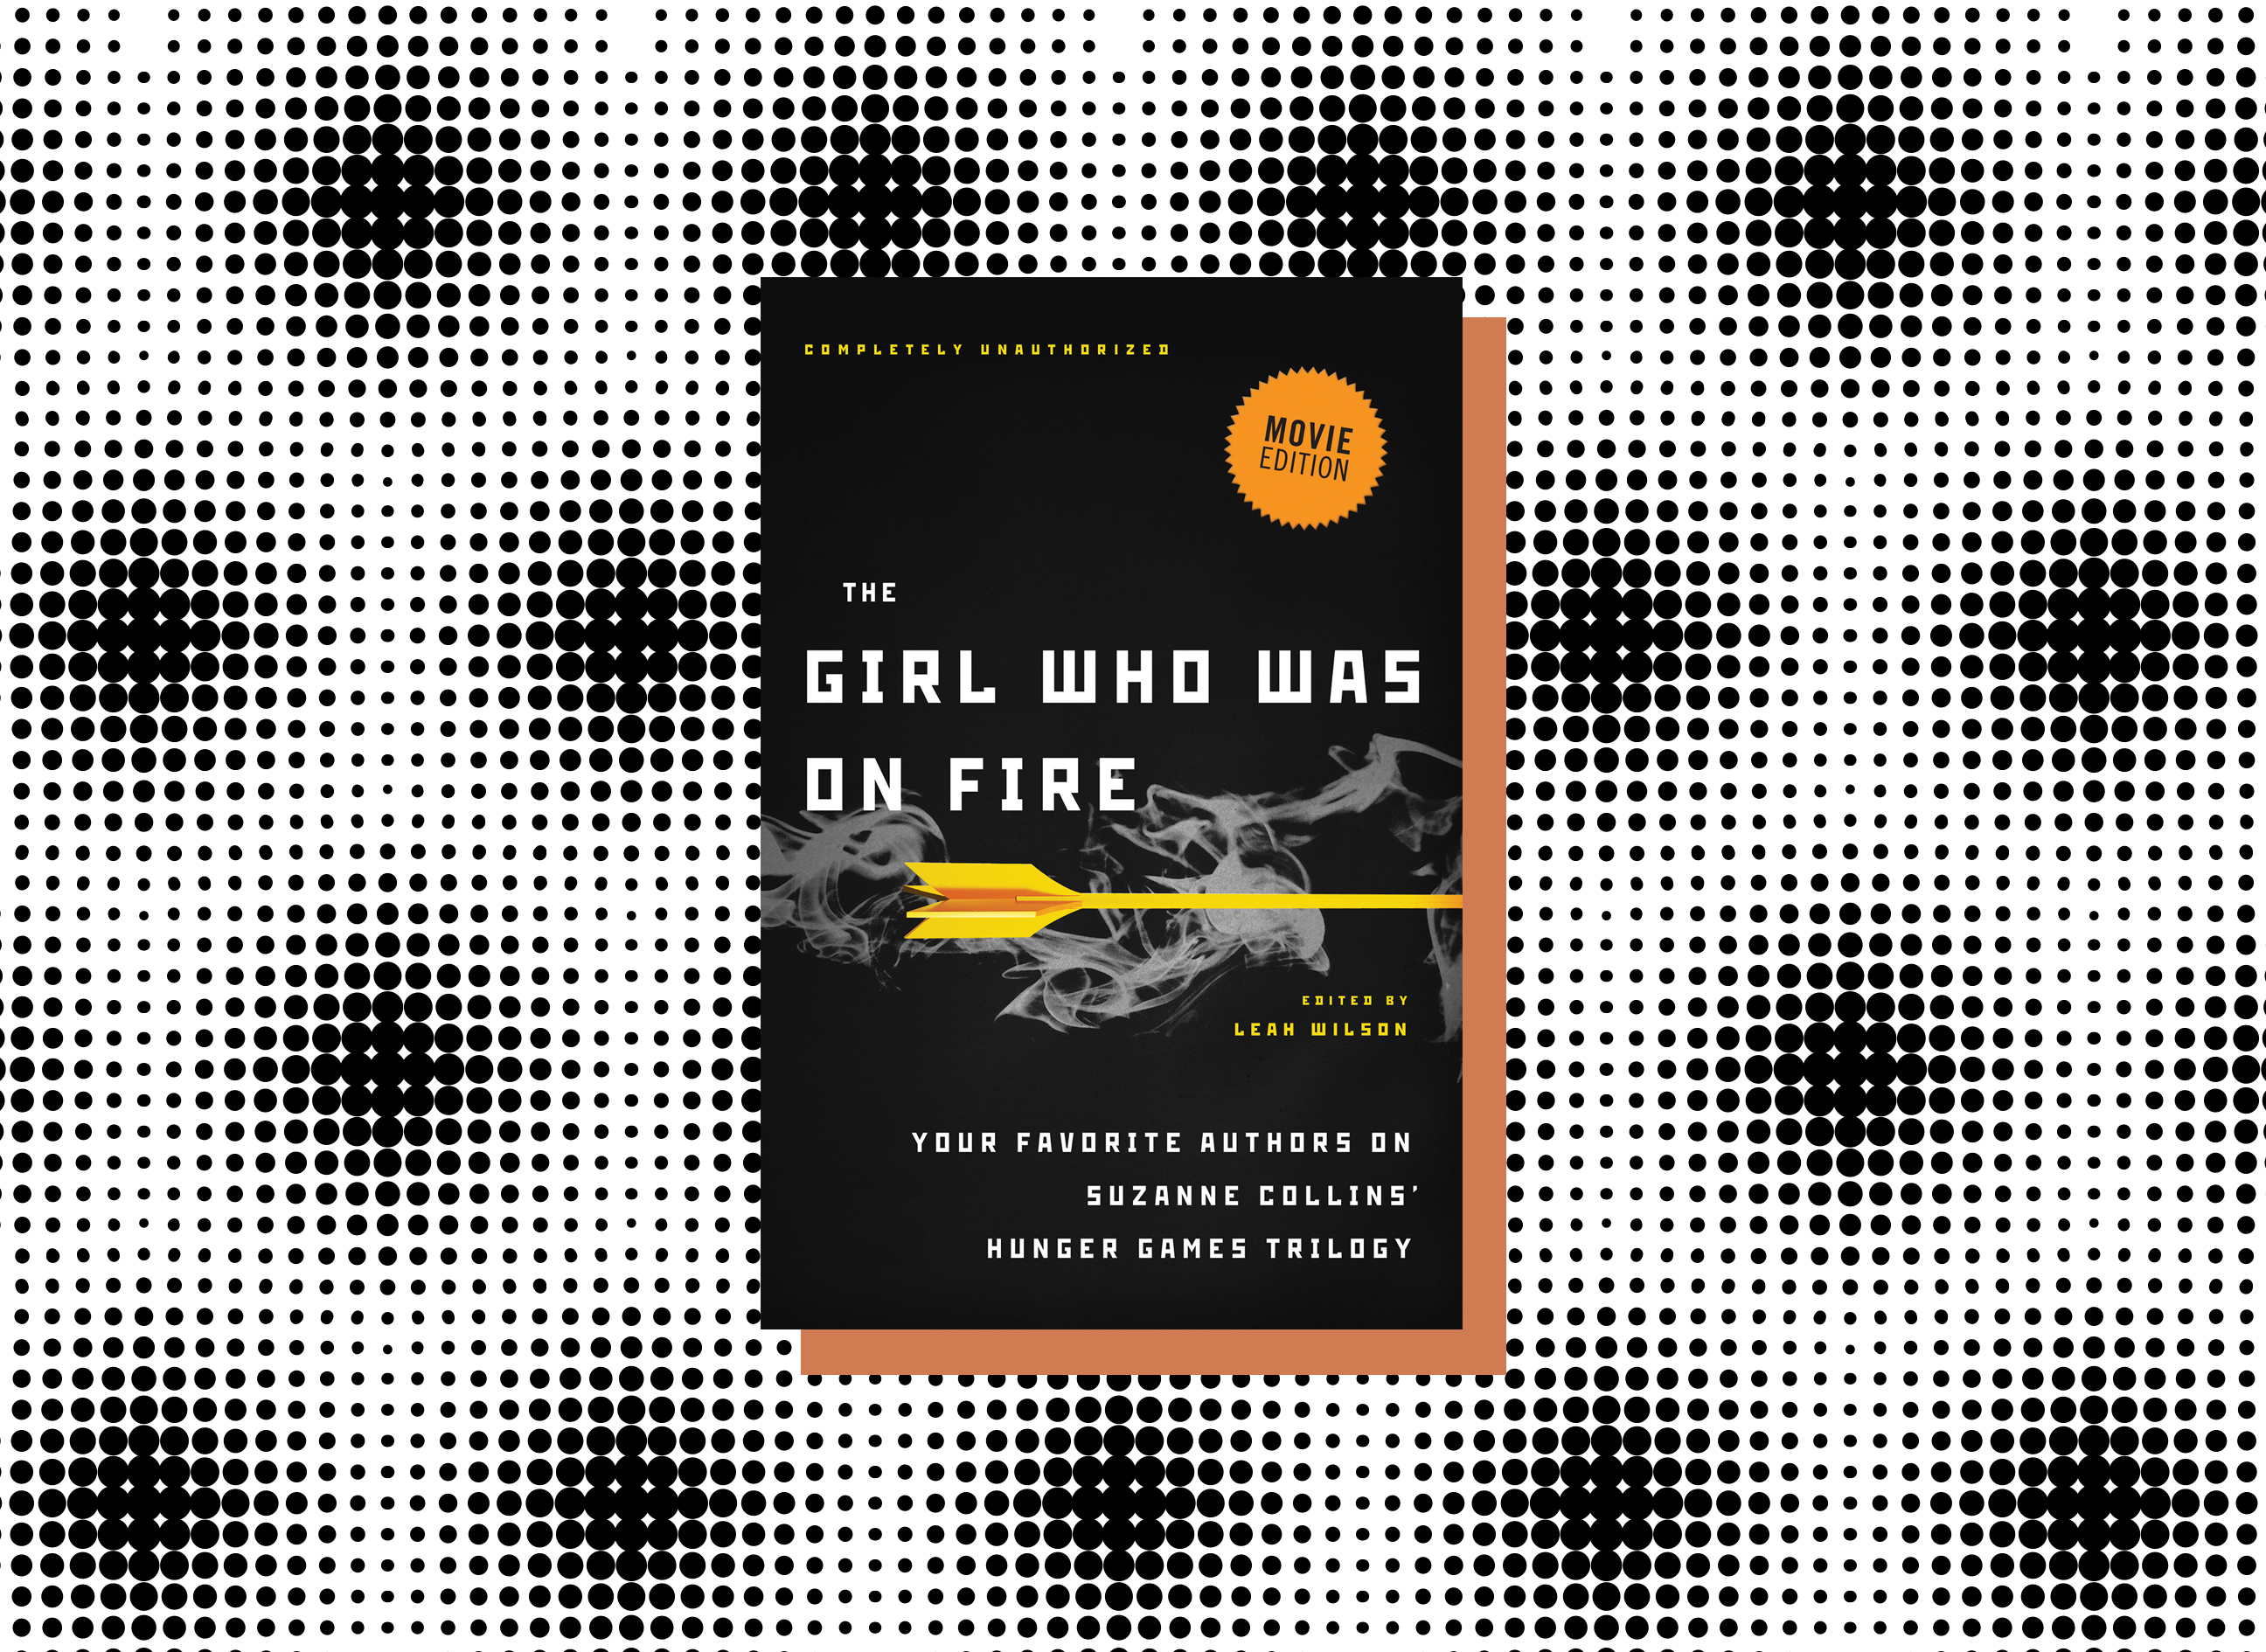 Smart Pop Classics: The Girl Who Was on Fire